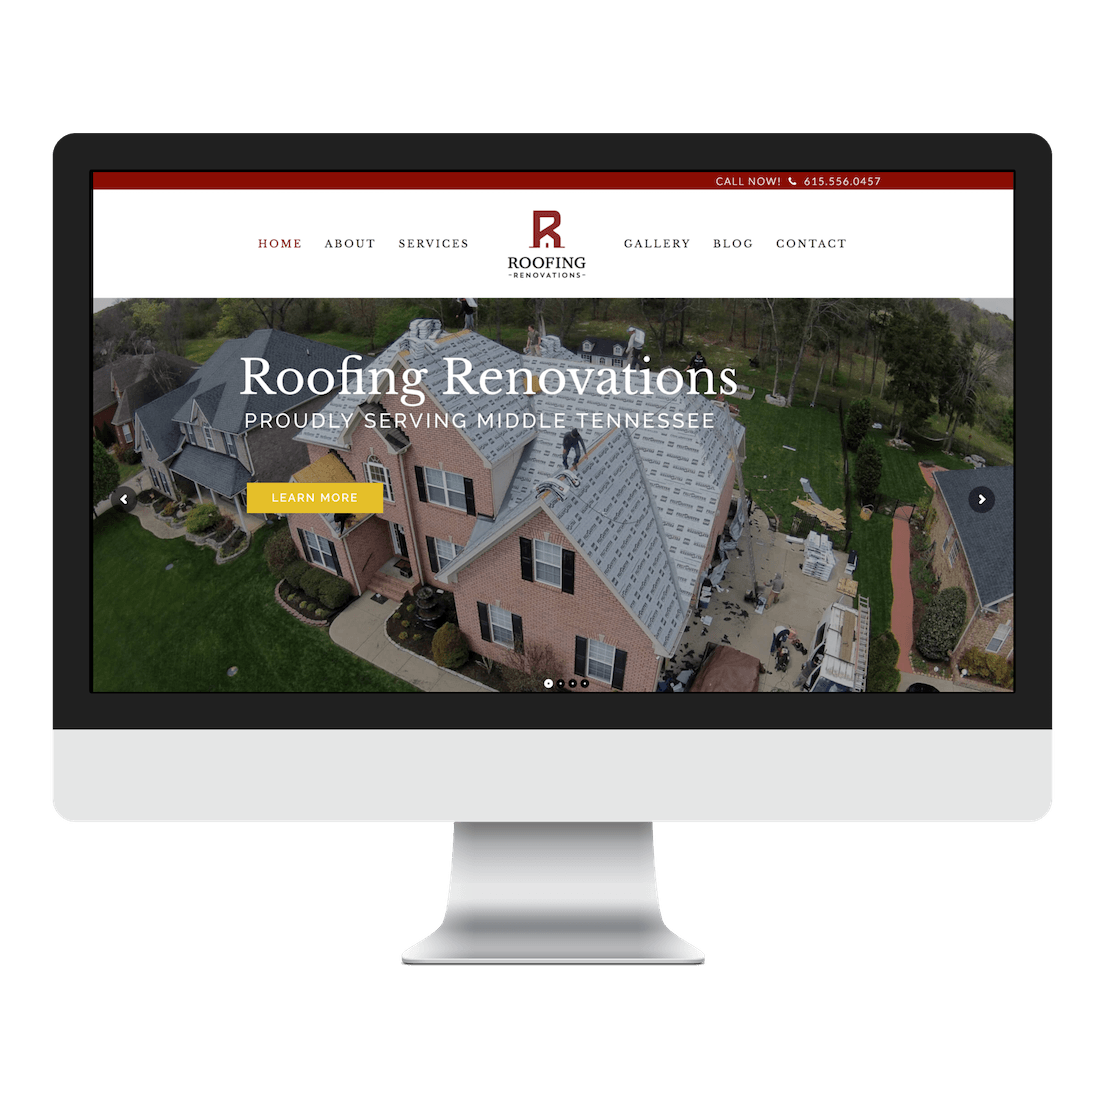 Roofing and Construction Website Designer in Nashville, TN